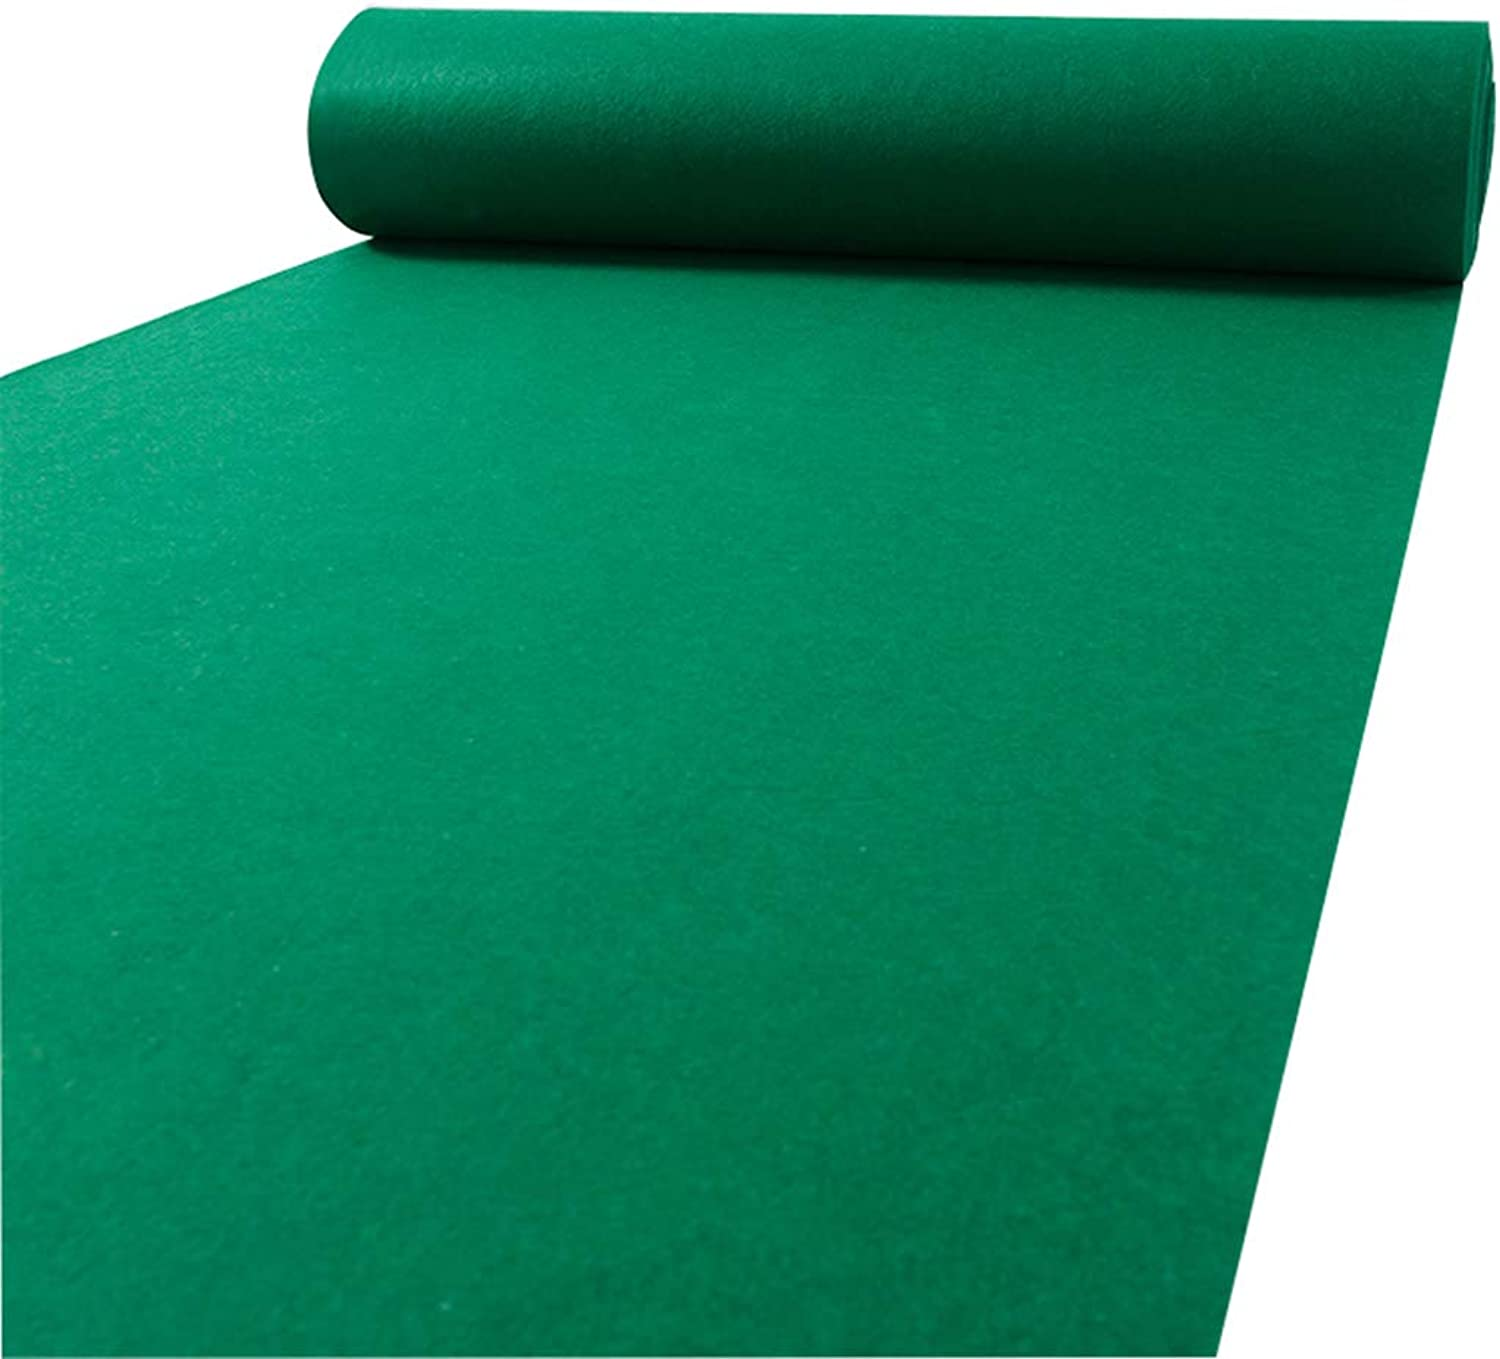 Wedding Carpet Runner, Green Carpet Foot Pad Thicker Wedding Ceremony Blanket Stage Exhibition Rug,Thickness 2mm